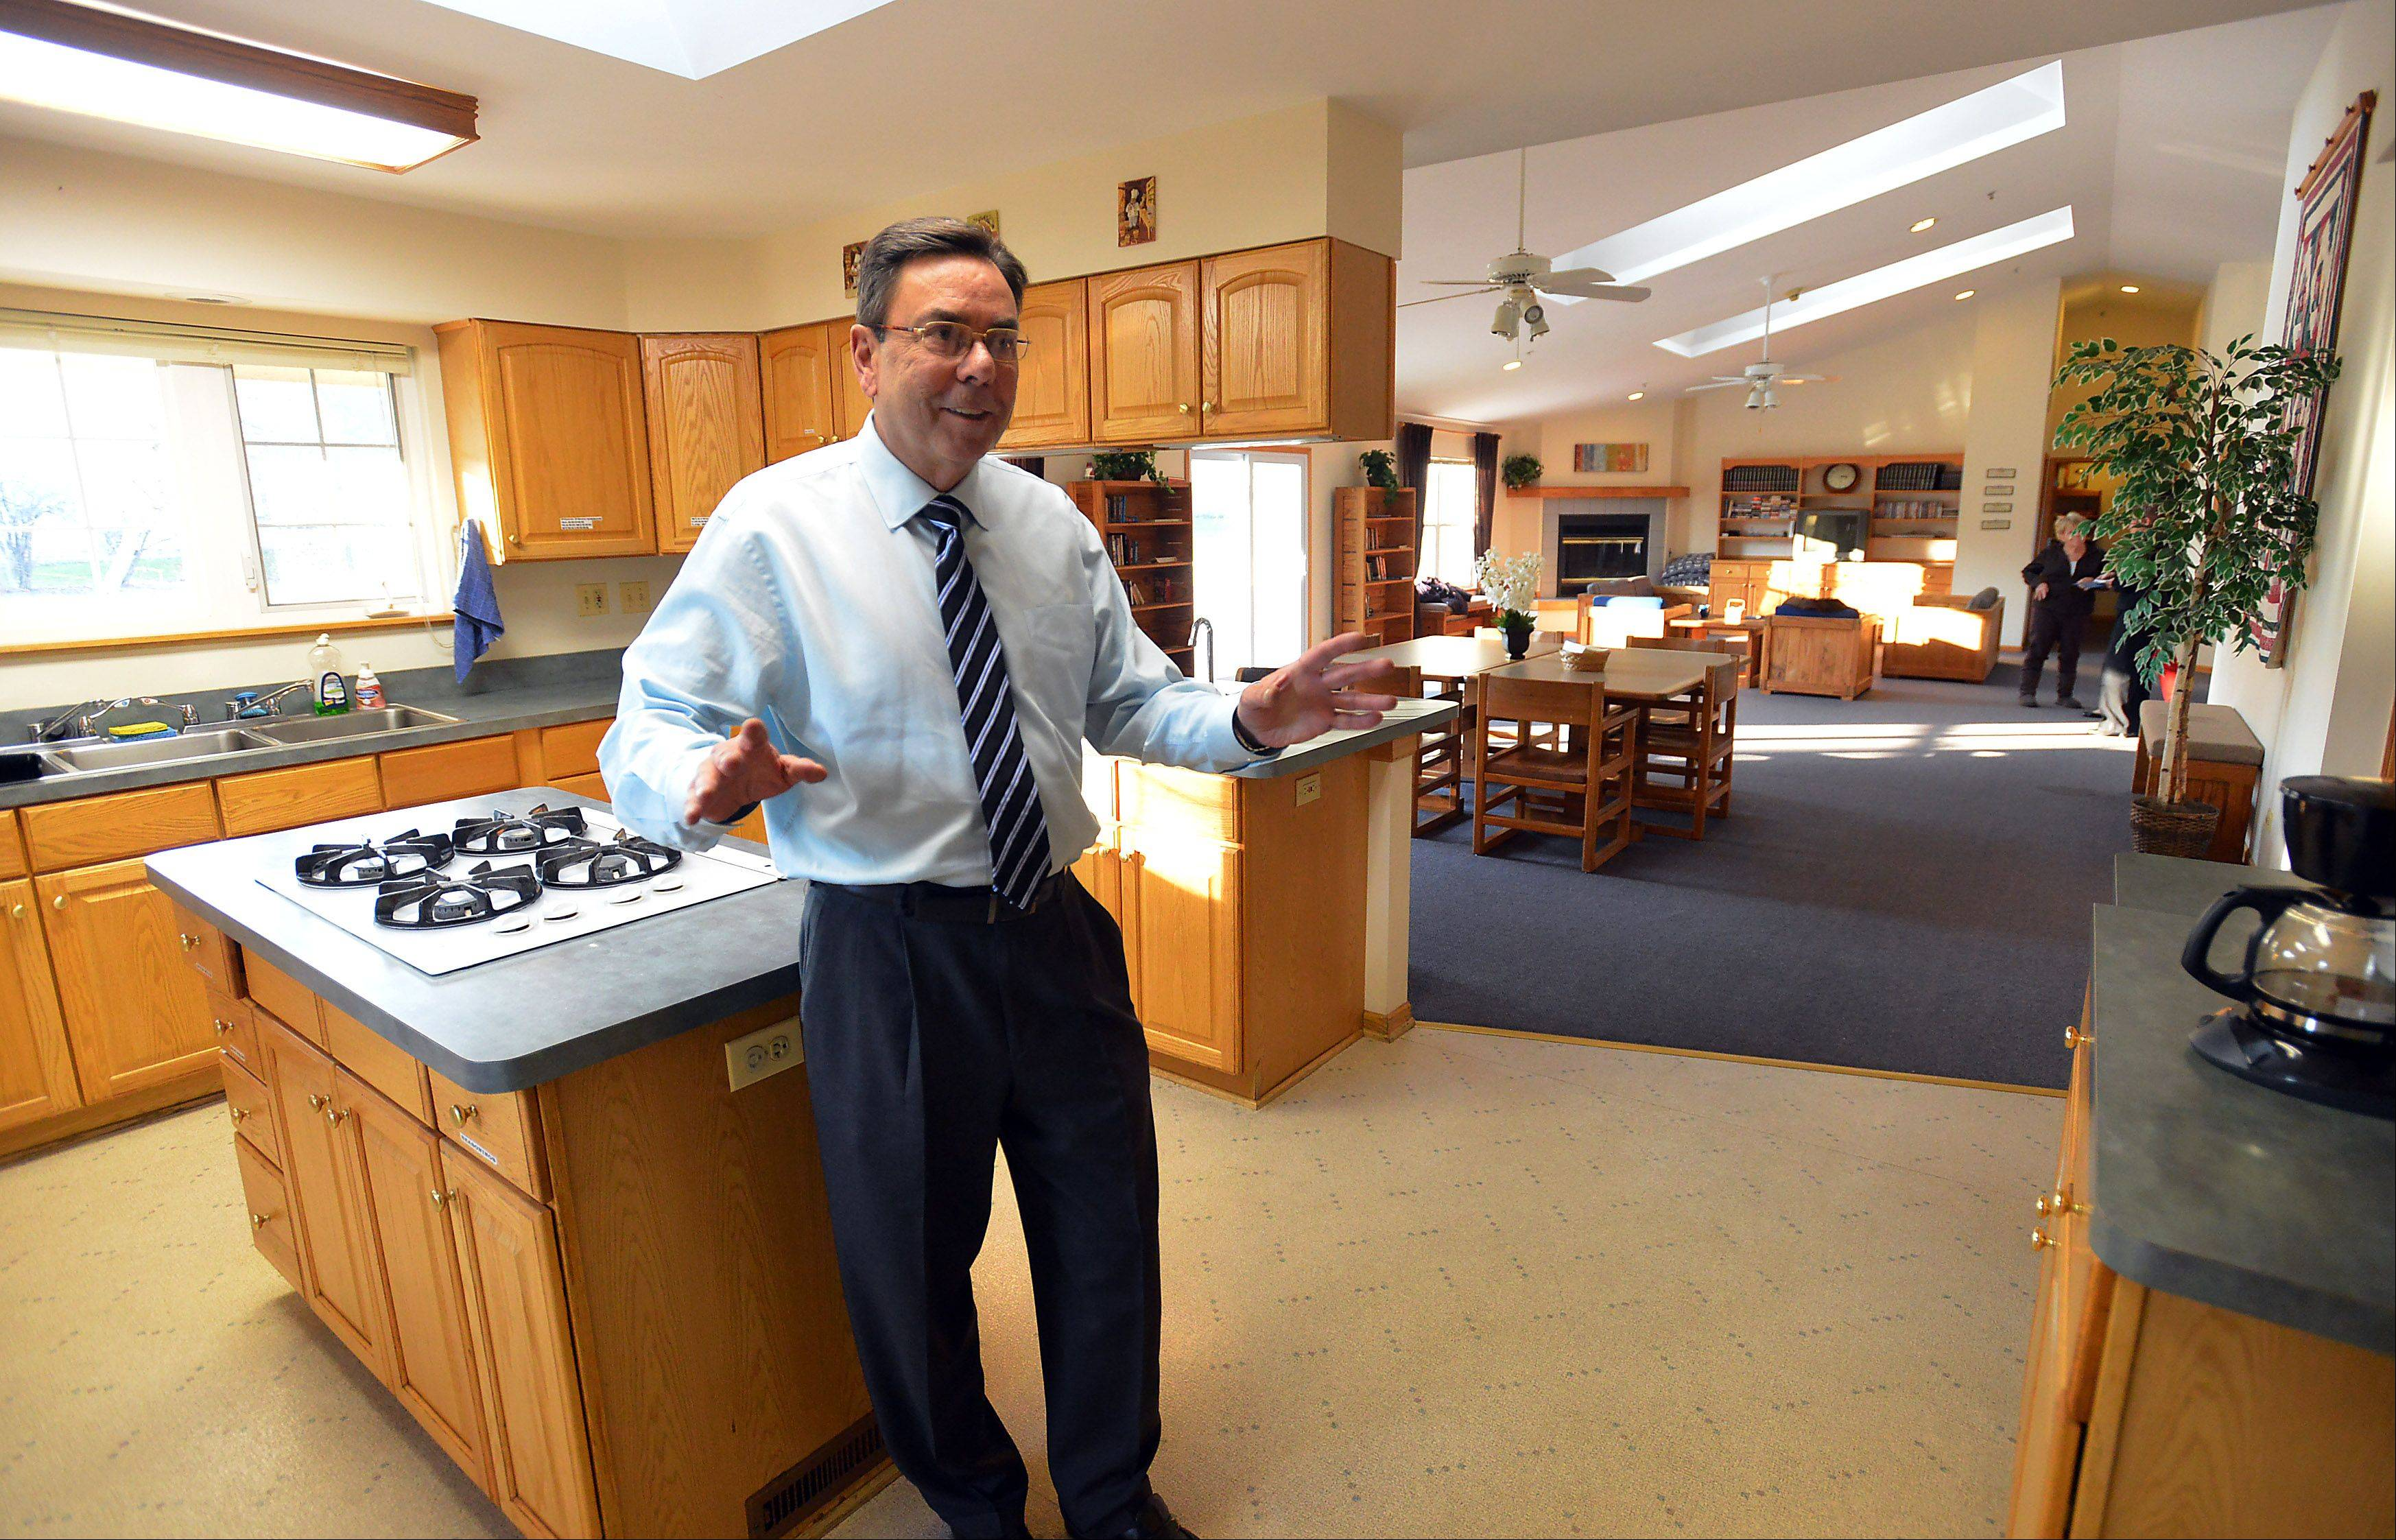 Tom Eagan, associate director of the Shelter, stands in the kitchen of the group home in Palatine that is a home for adolescent boys that face trouble in their homes.